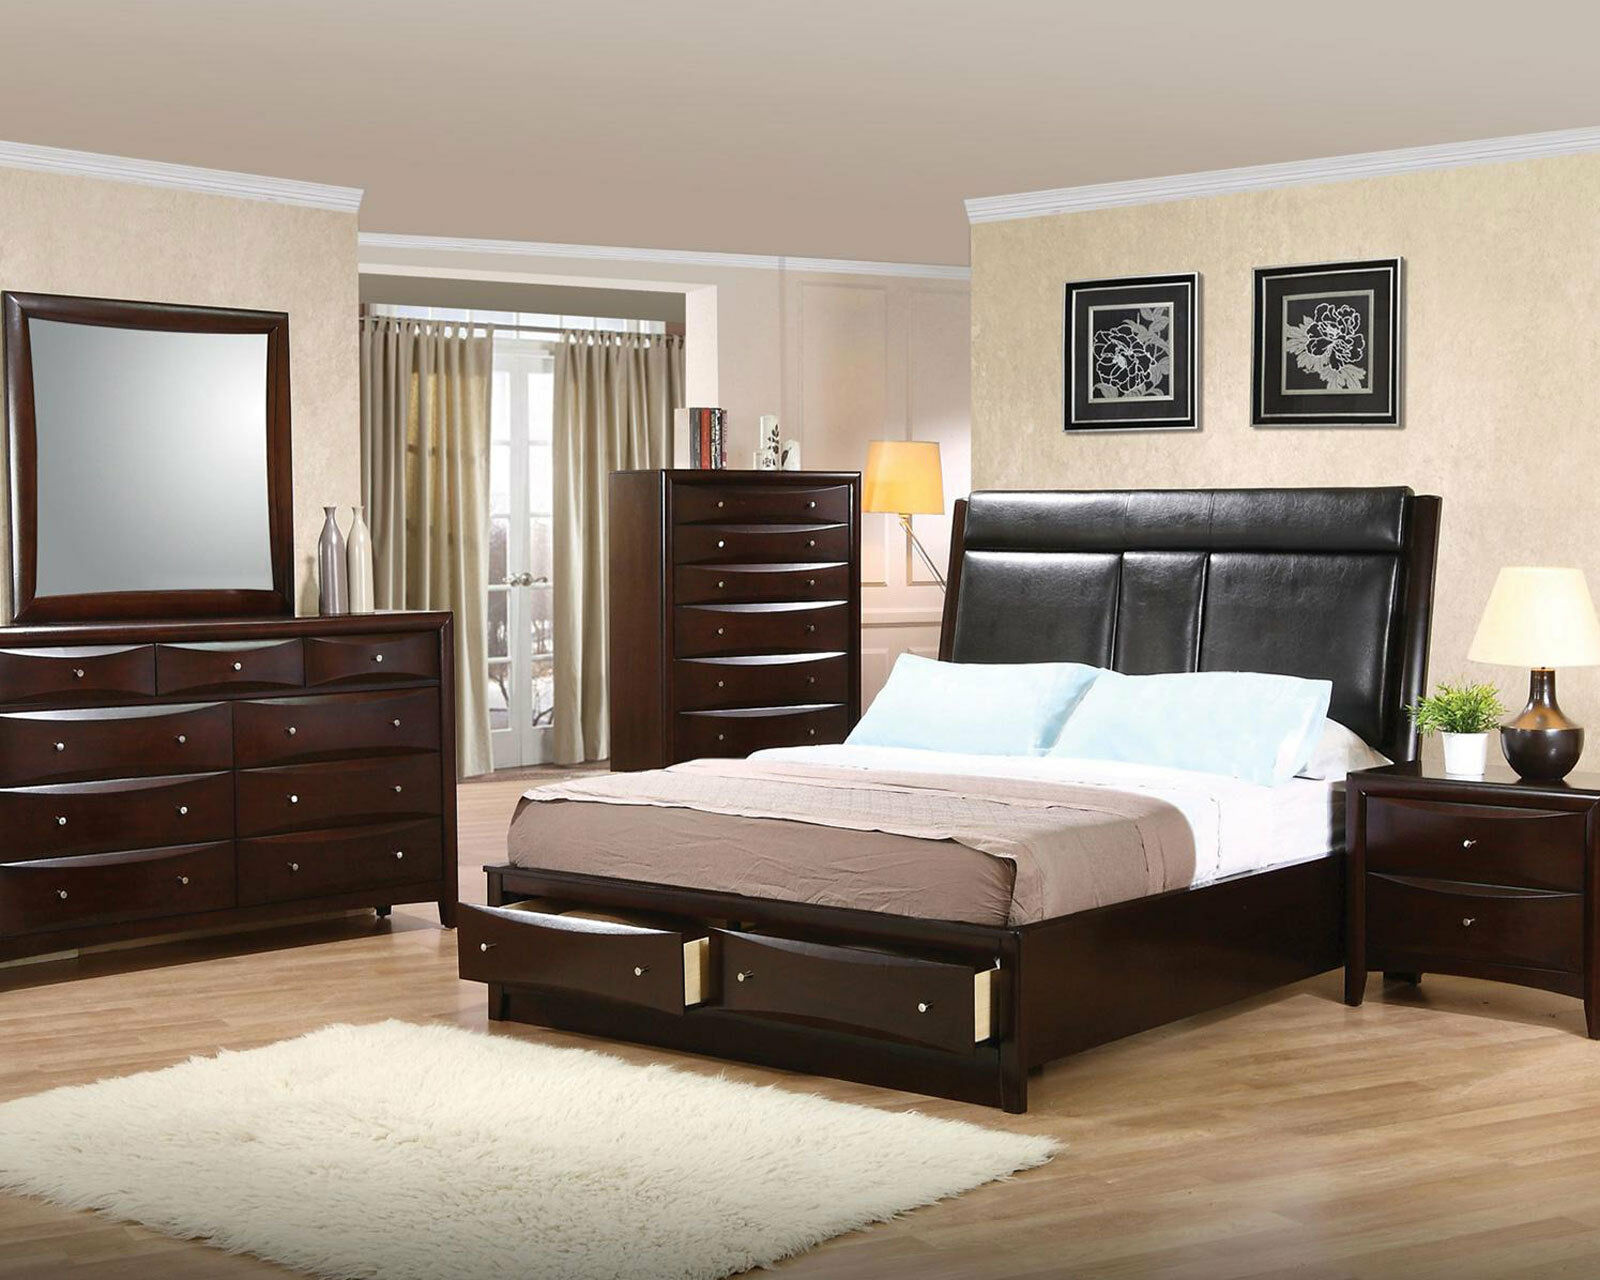 Modern espresso brown finish bedroom harrington 5pcs - Espresso brown bedroom furniture ...